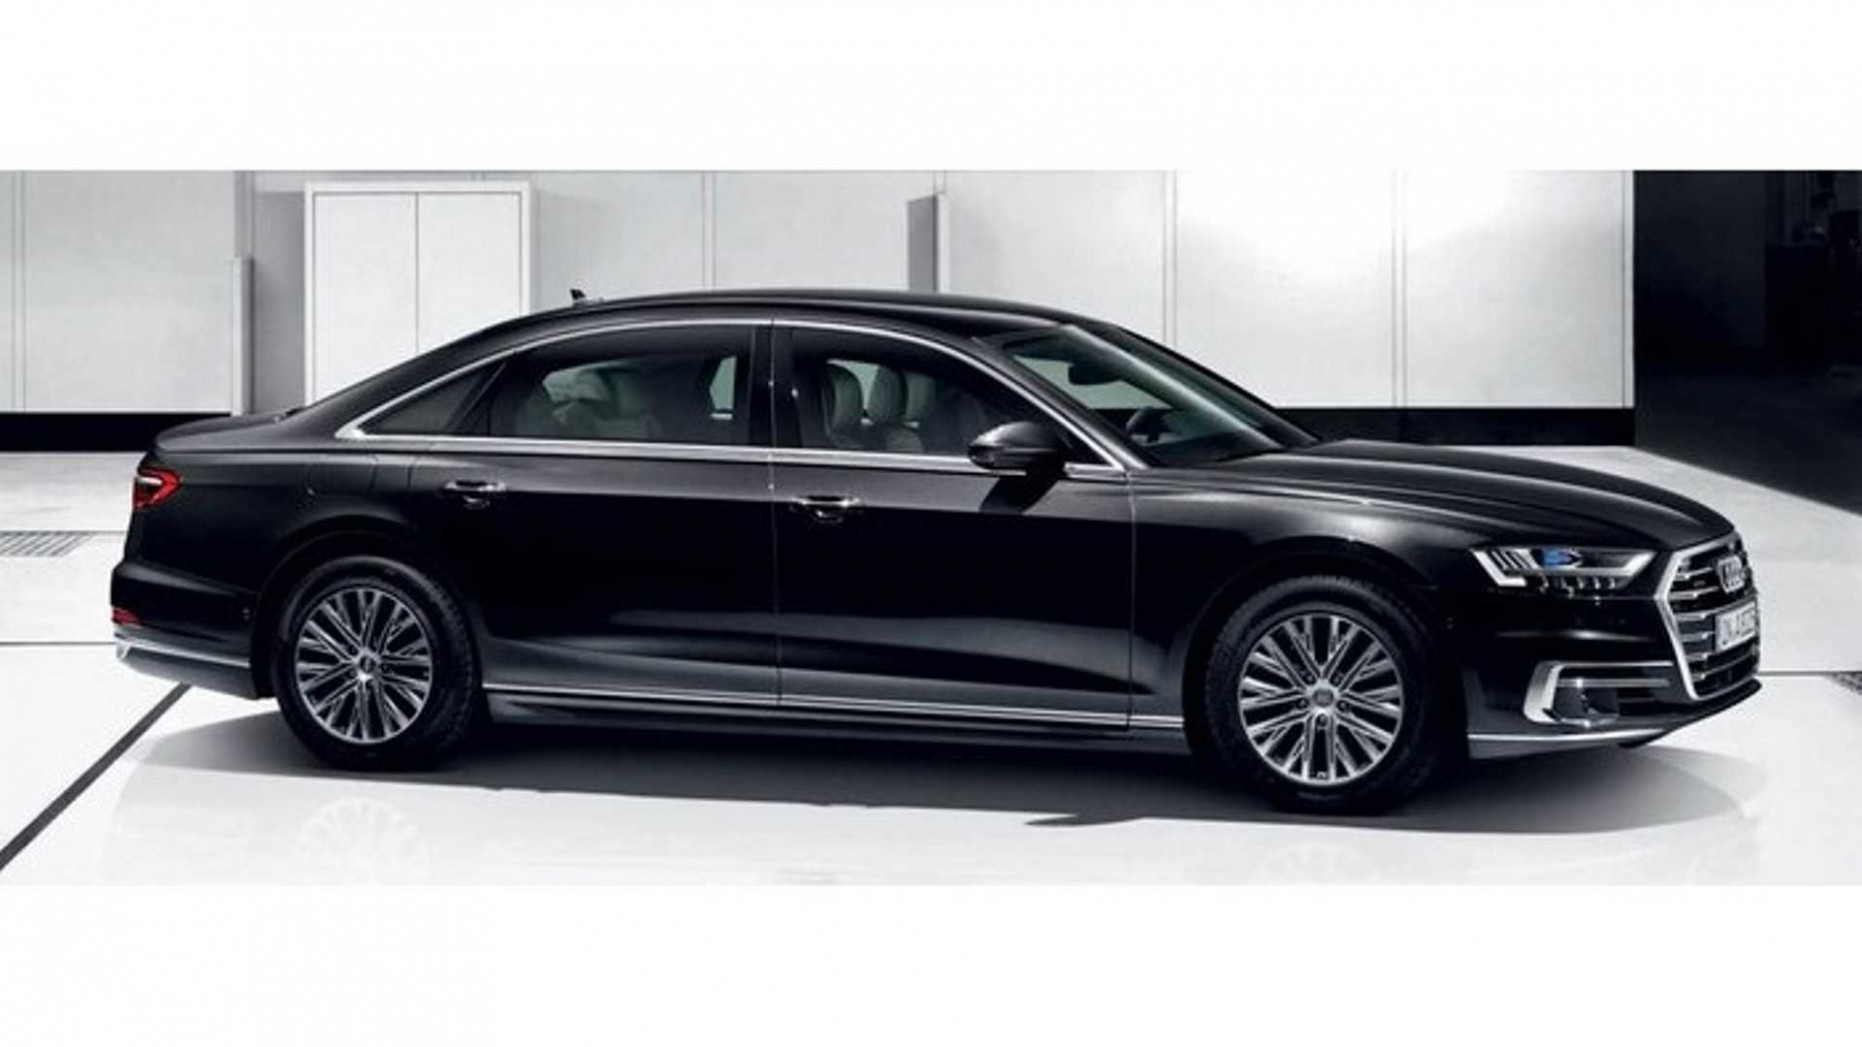 Overview 2022 Audi A8 L In Usa